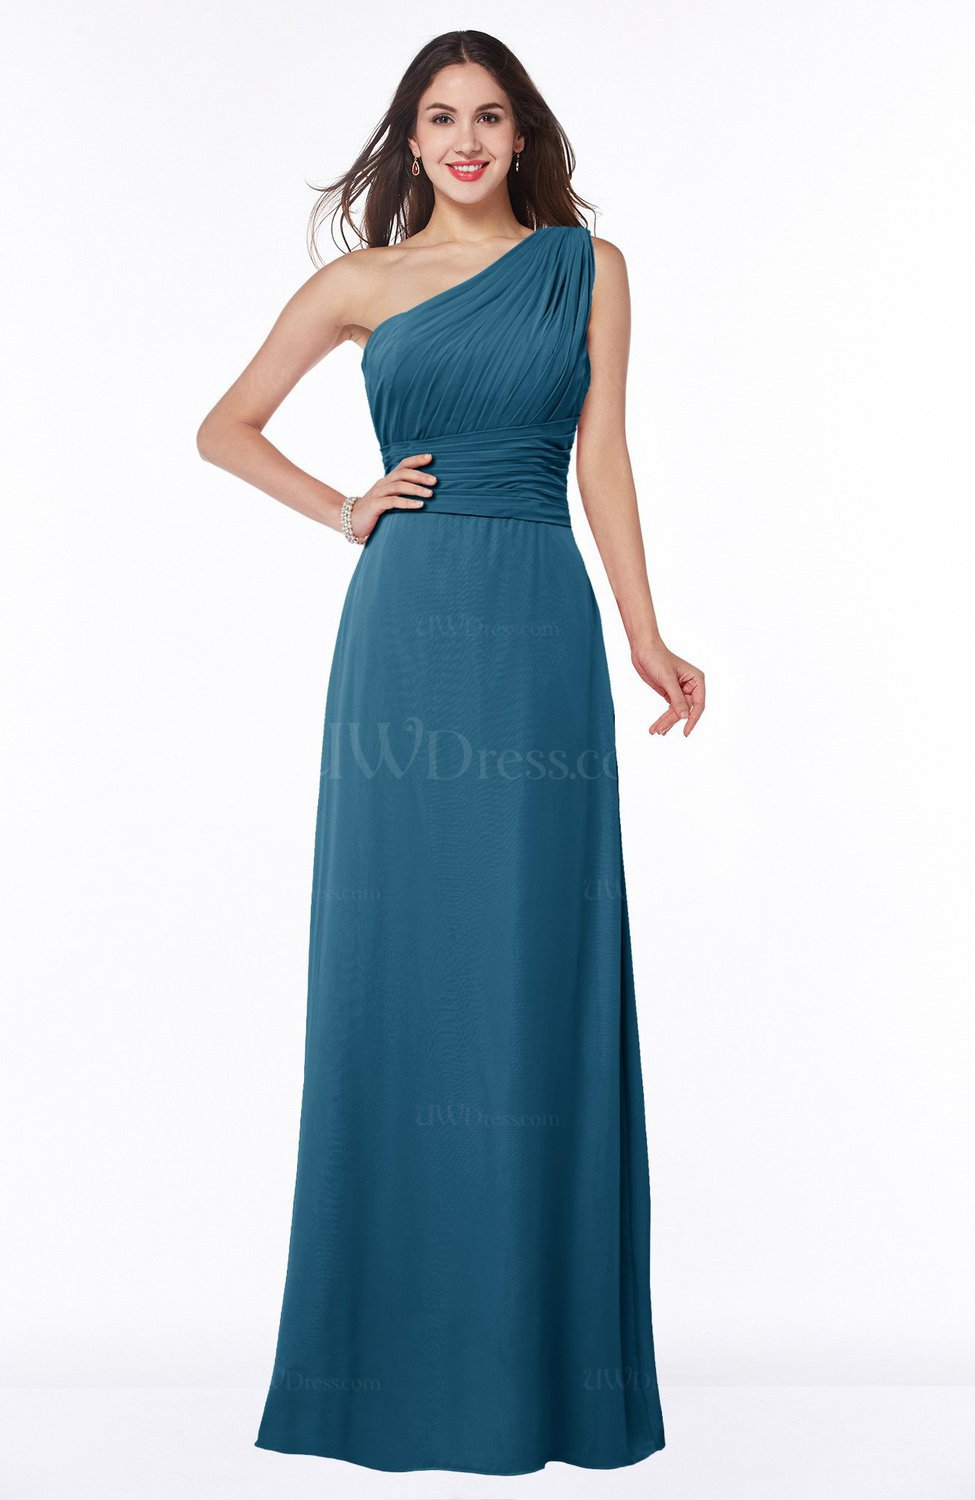 Plus size bridesmaid dresses uwdress moroccan blue elegant a line asymmetric neckline sleeveless floor length sash plus size bridesmaid dresses ombrellifo Choice Image